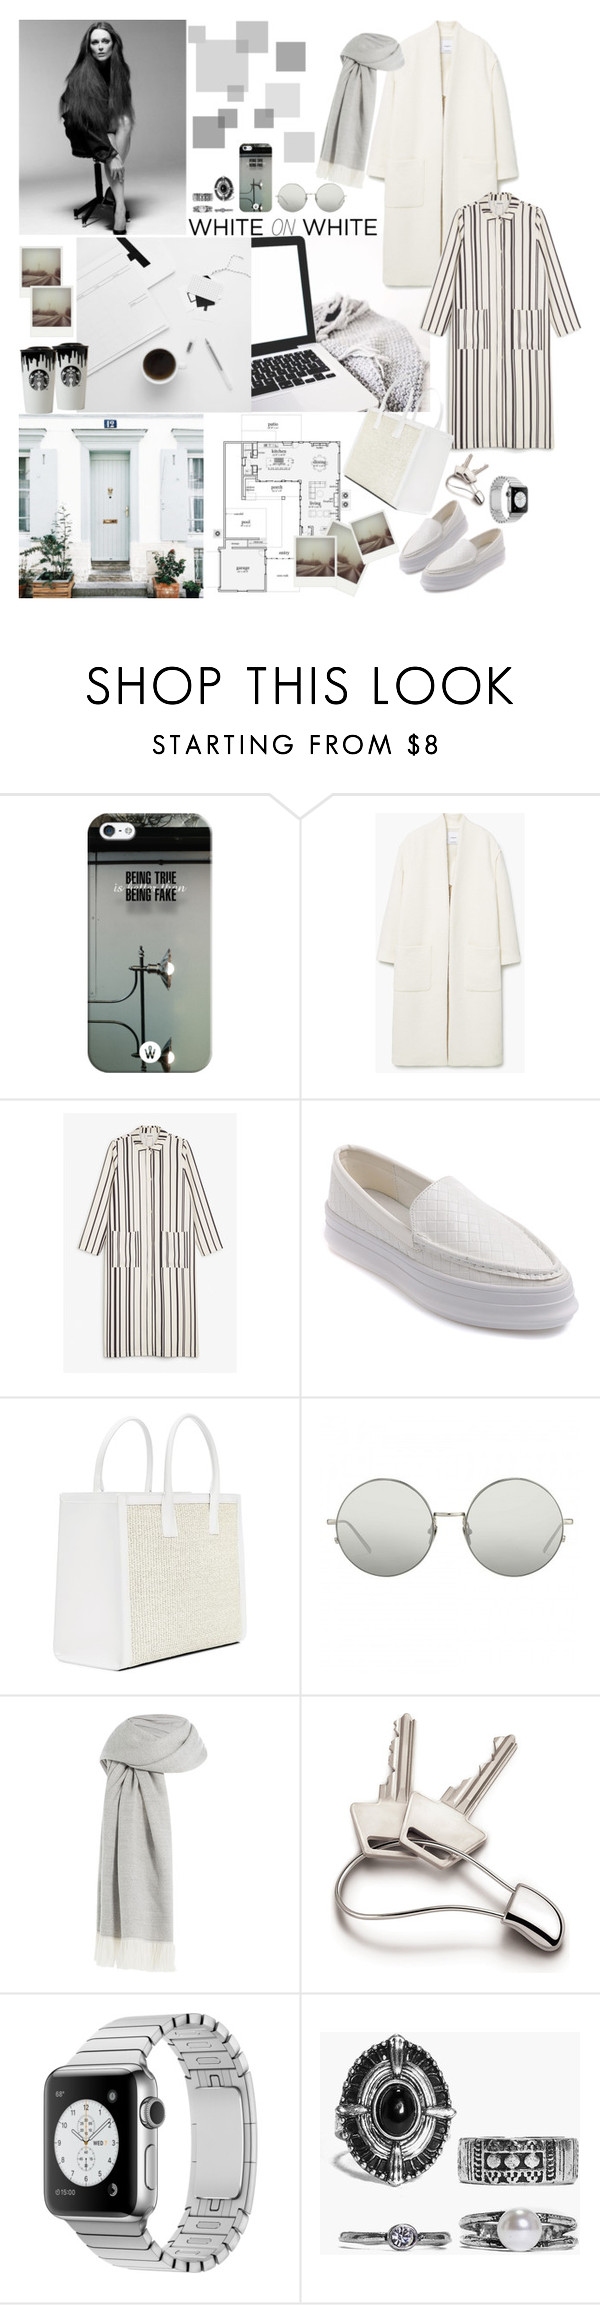 """WHITE oN white"" by mariettamyan ❤ liked on Polyvore featuring JULIANNE, Privé, Band of Outsiders, Casetify, Polaroid, MANGO, Monki, Linda Farrow, Agnona and Georg Jensen"